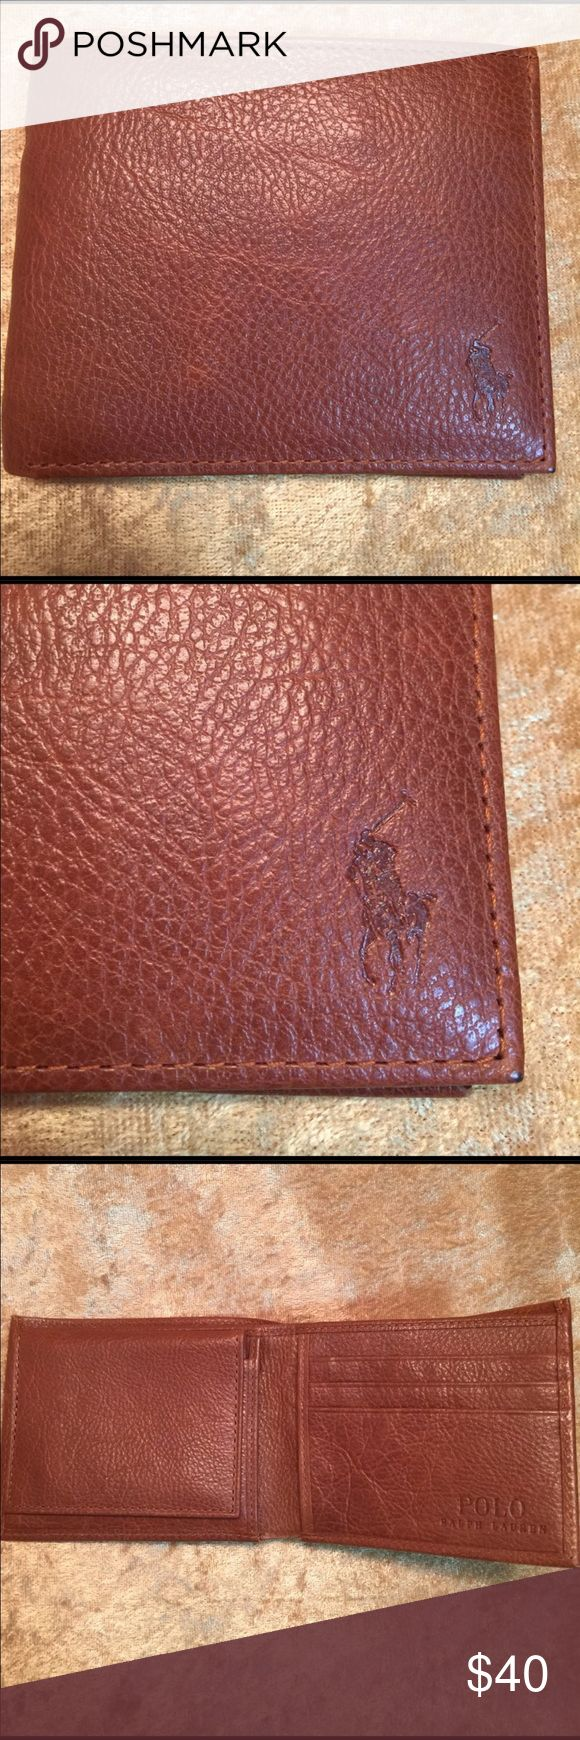 Men's Polo Billfold New with tag do not have original box but will include a gift box Polo by Ralph Lauren Bags Wallets